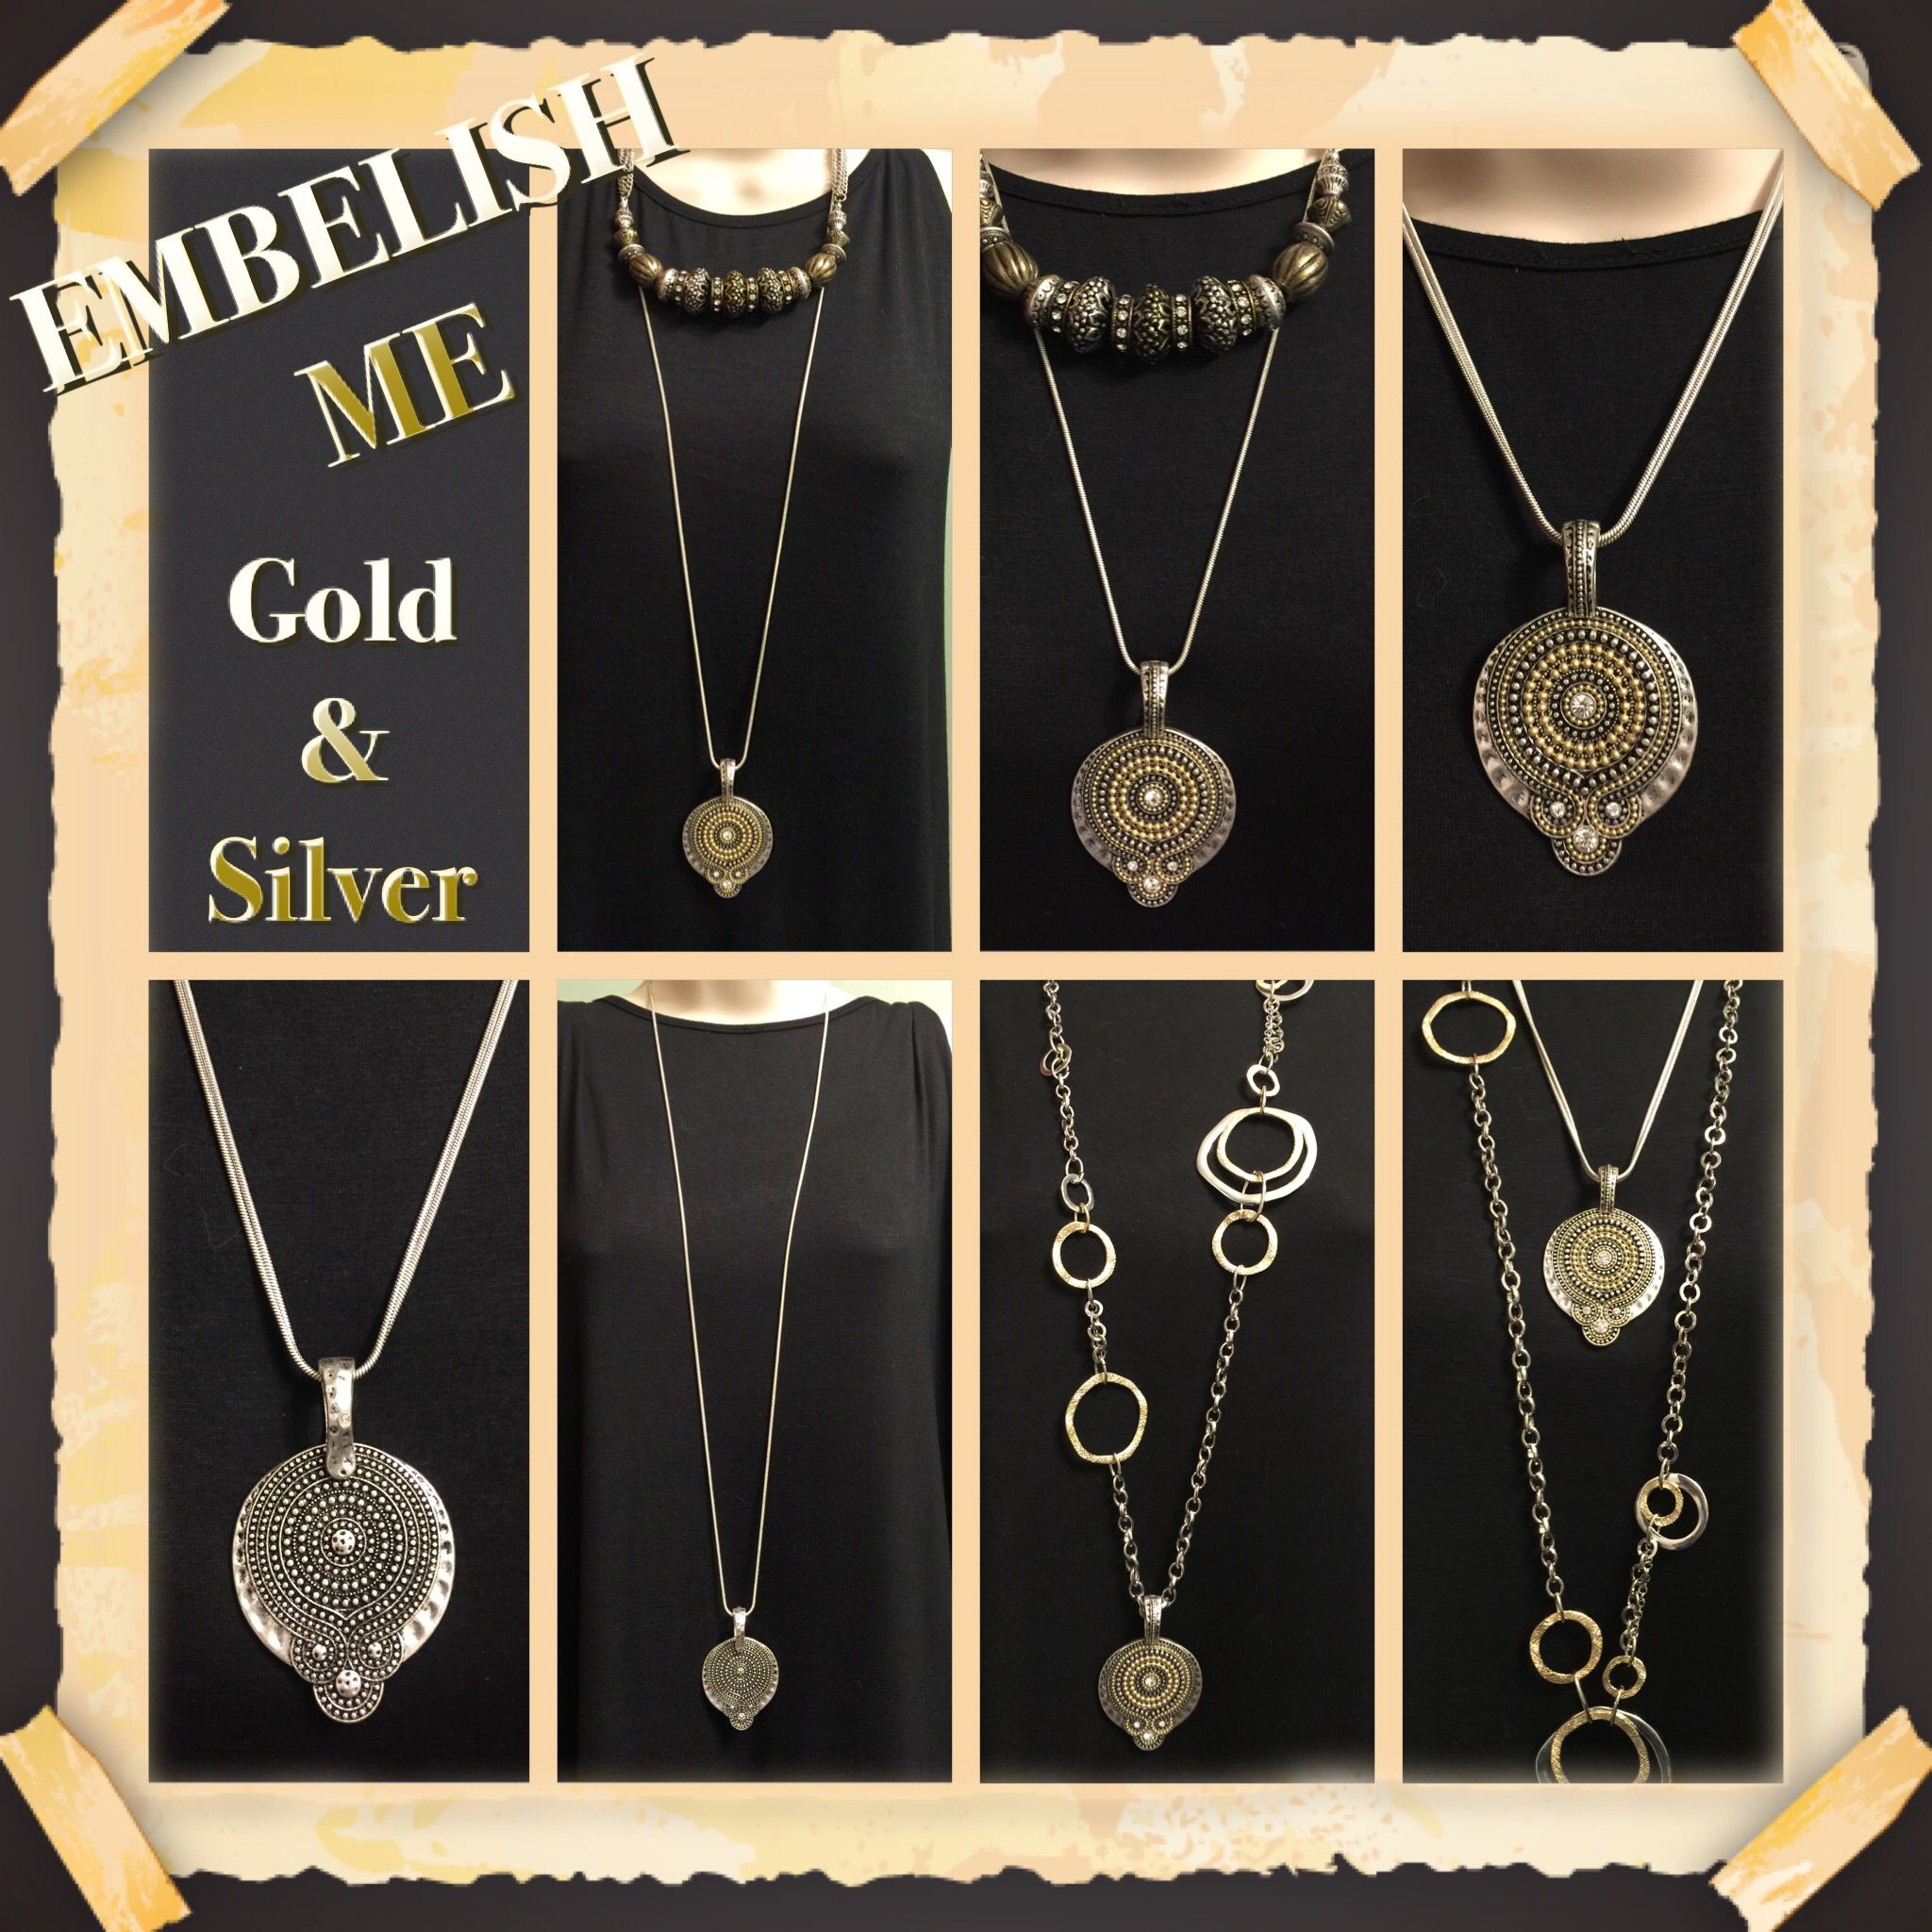 Premier designs jewelry 2015 - Premier Designs Embellish Me Reversible For Gold And Silver